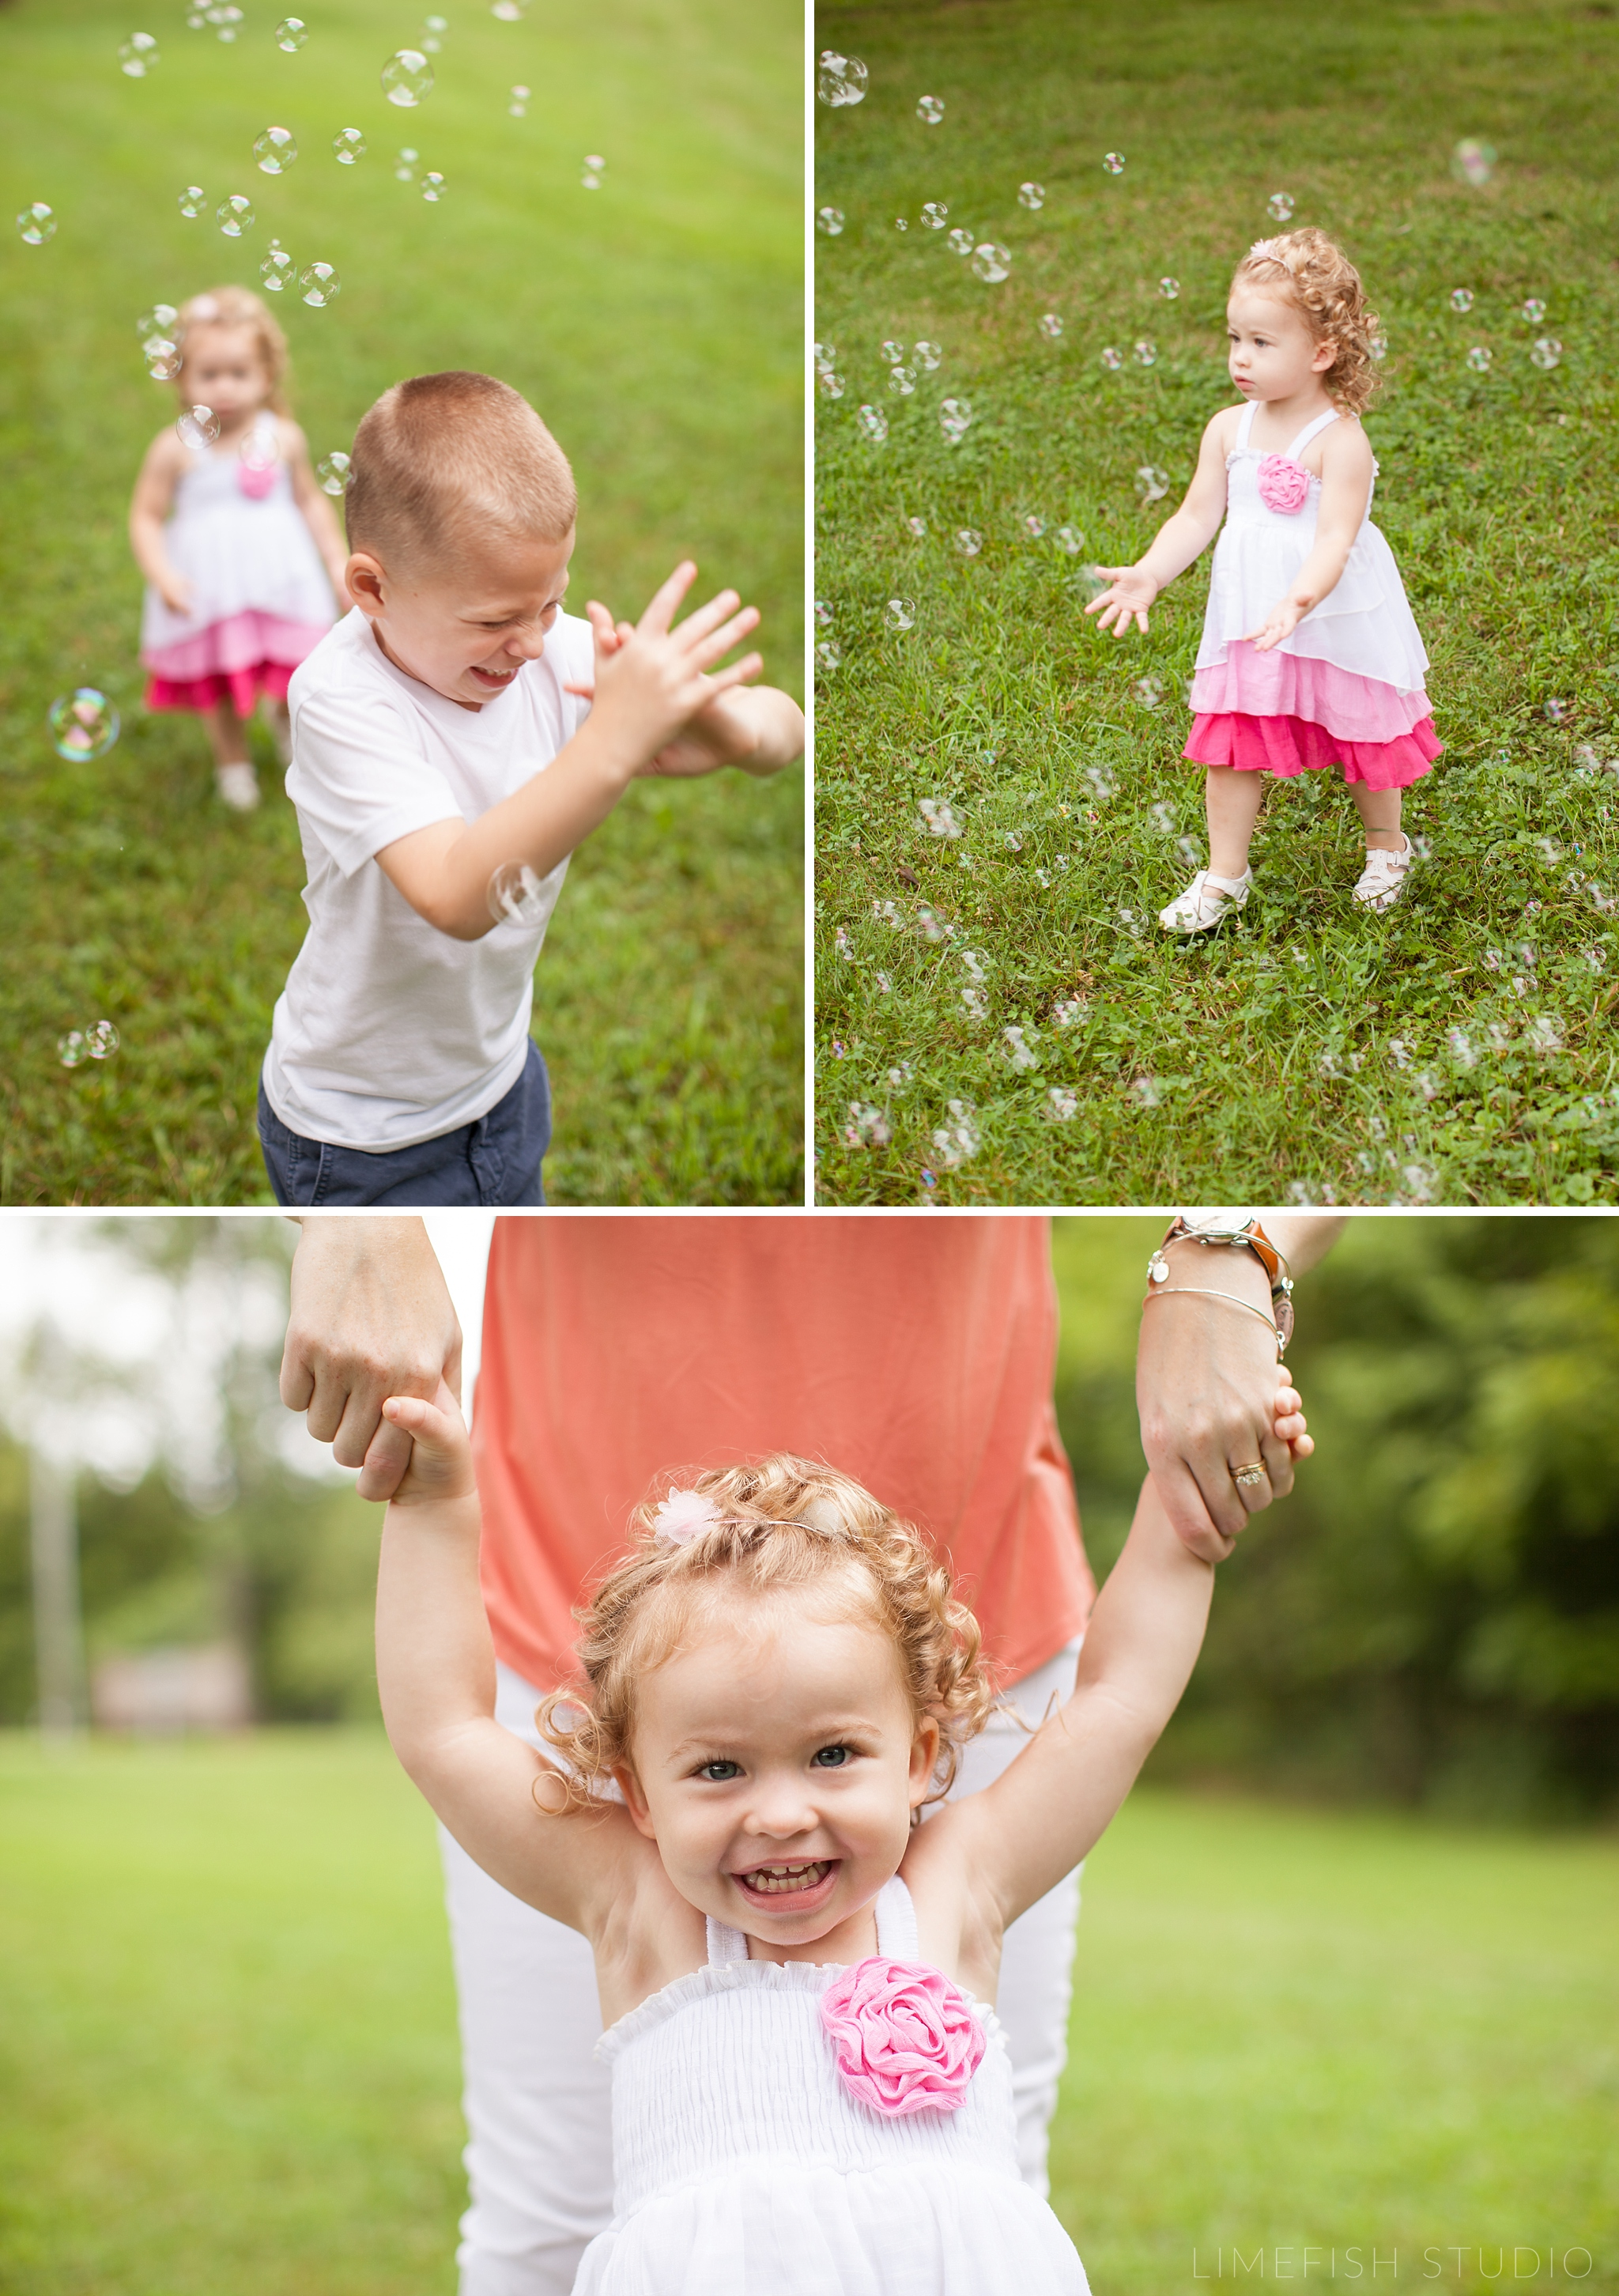 Limefish Studio Photography | Lake Monticello Family Portraits | Two Year Old